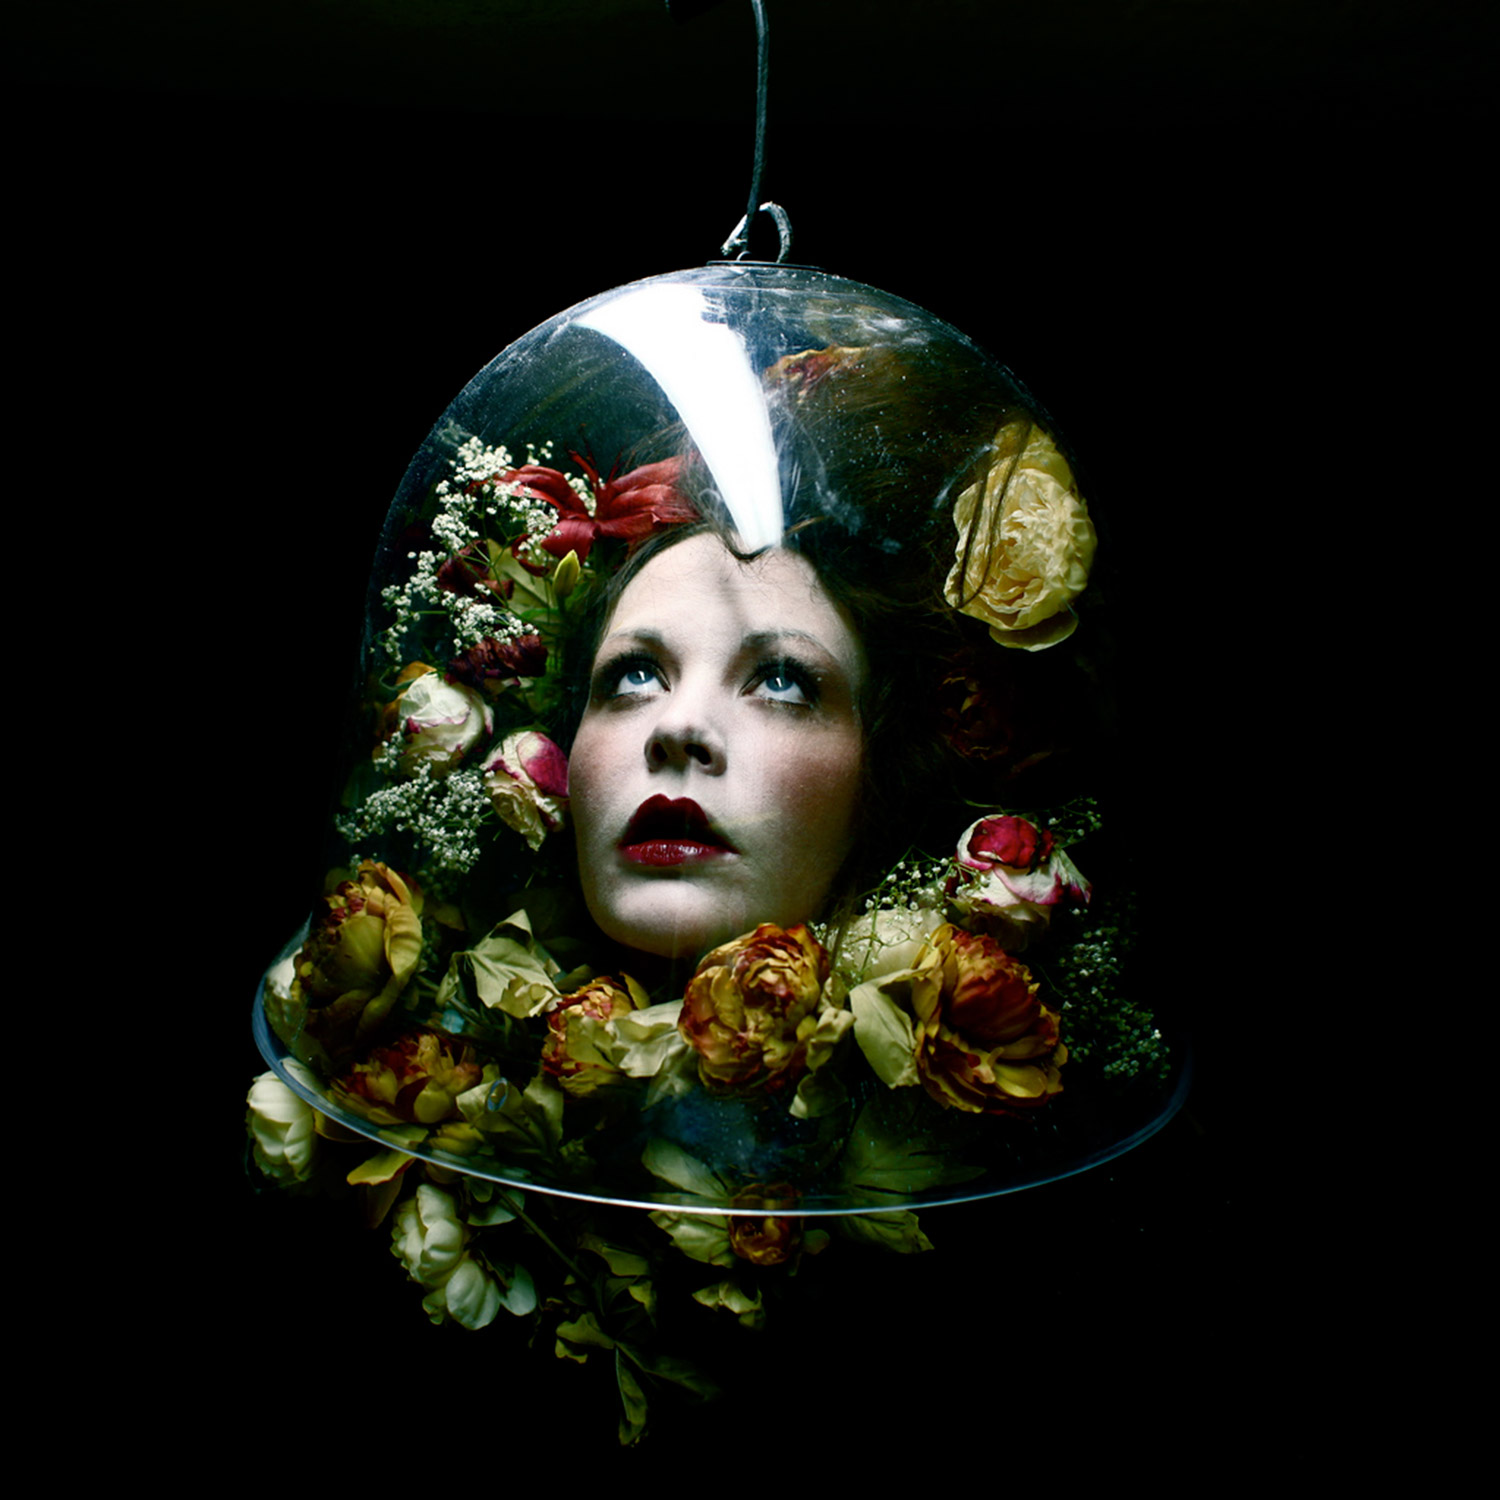 Helen Warner, Preservation - melancholic head among flowers in a bell jar